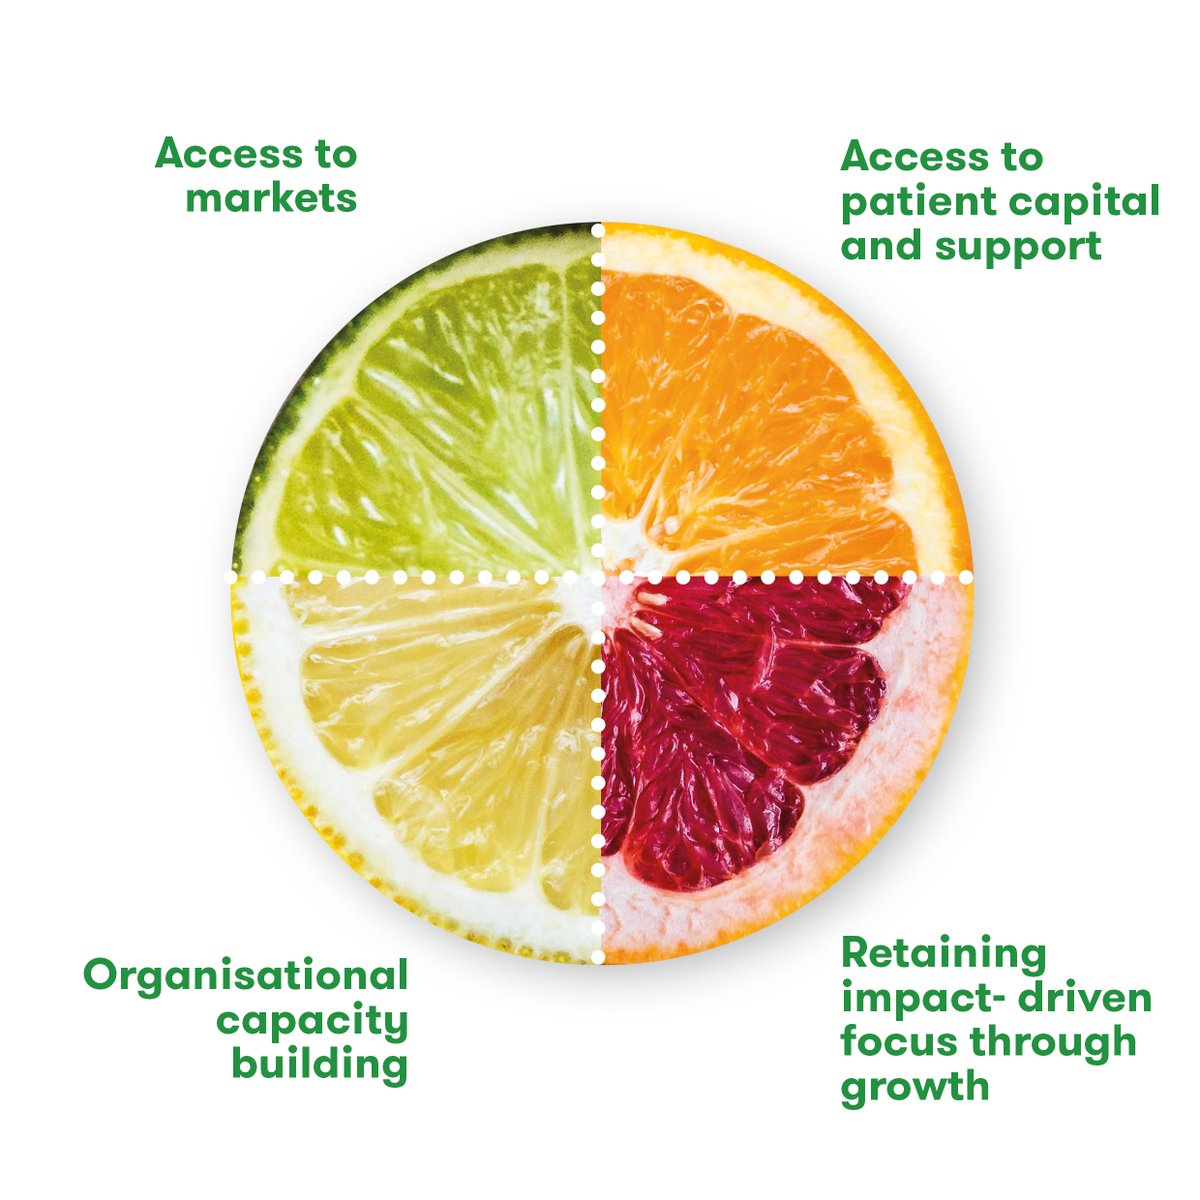 Does your food business positively impact people and planet? Apply to Impact Hub